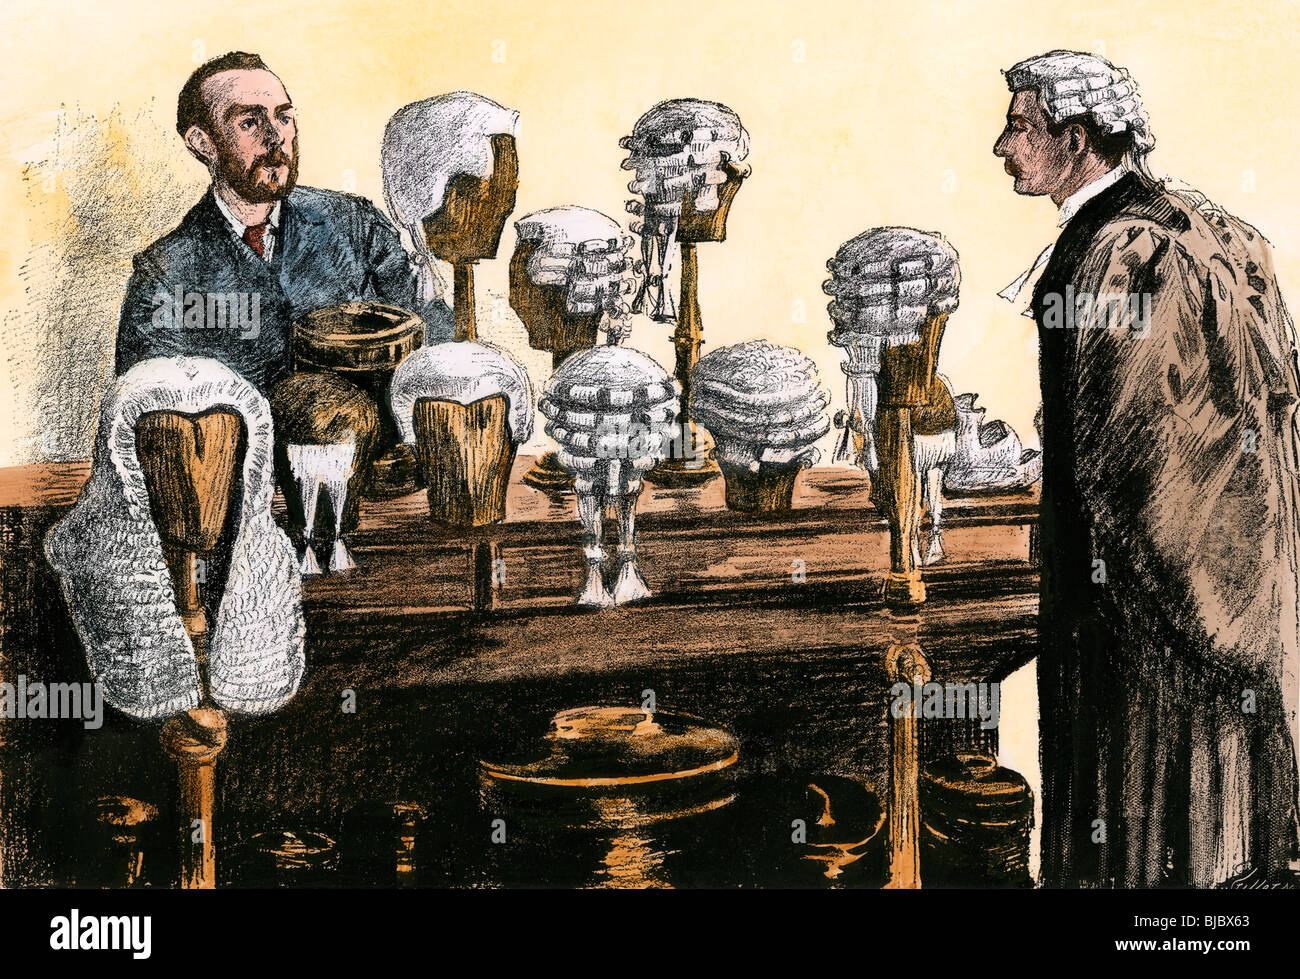 Lawyer selecting the proper wig for appearance in court, London, 1800s. Hand-colored woodcut - Stock Image